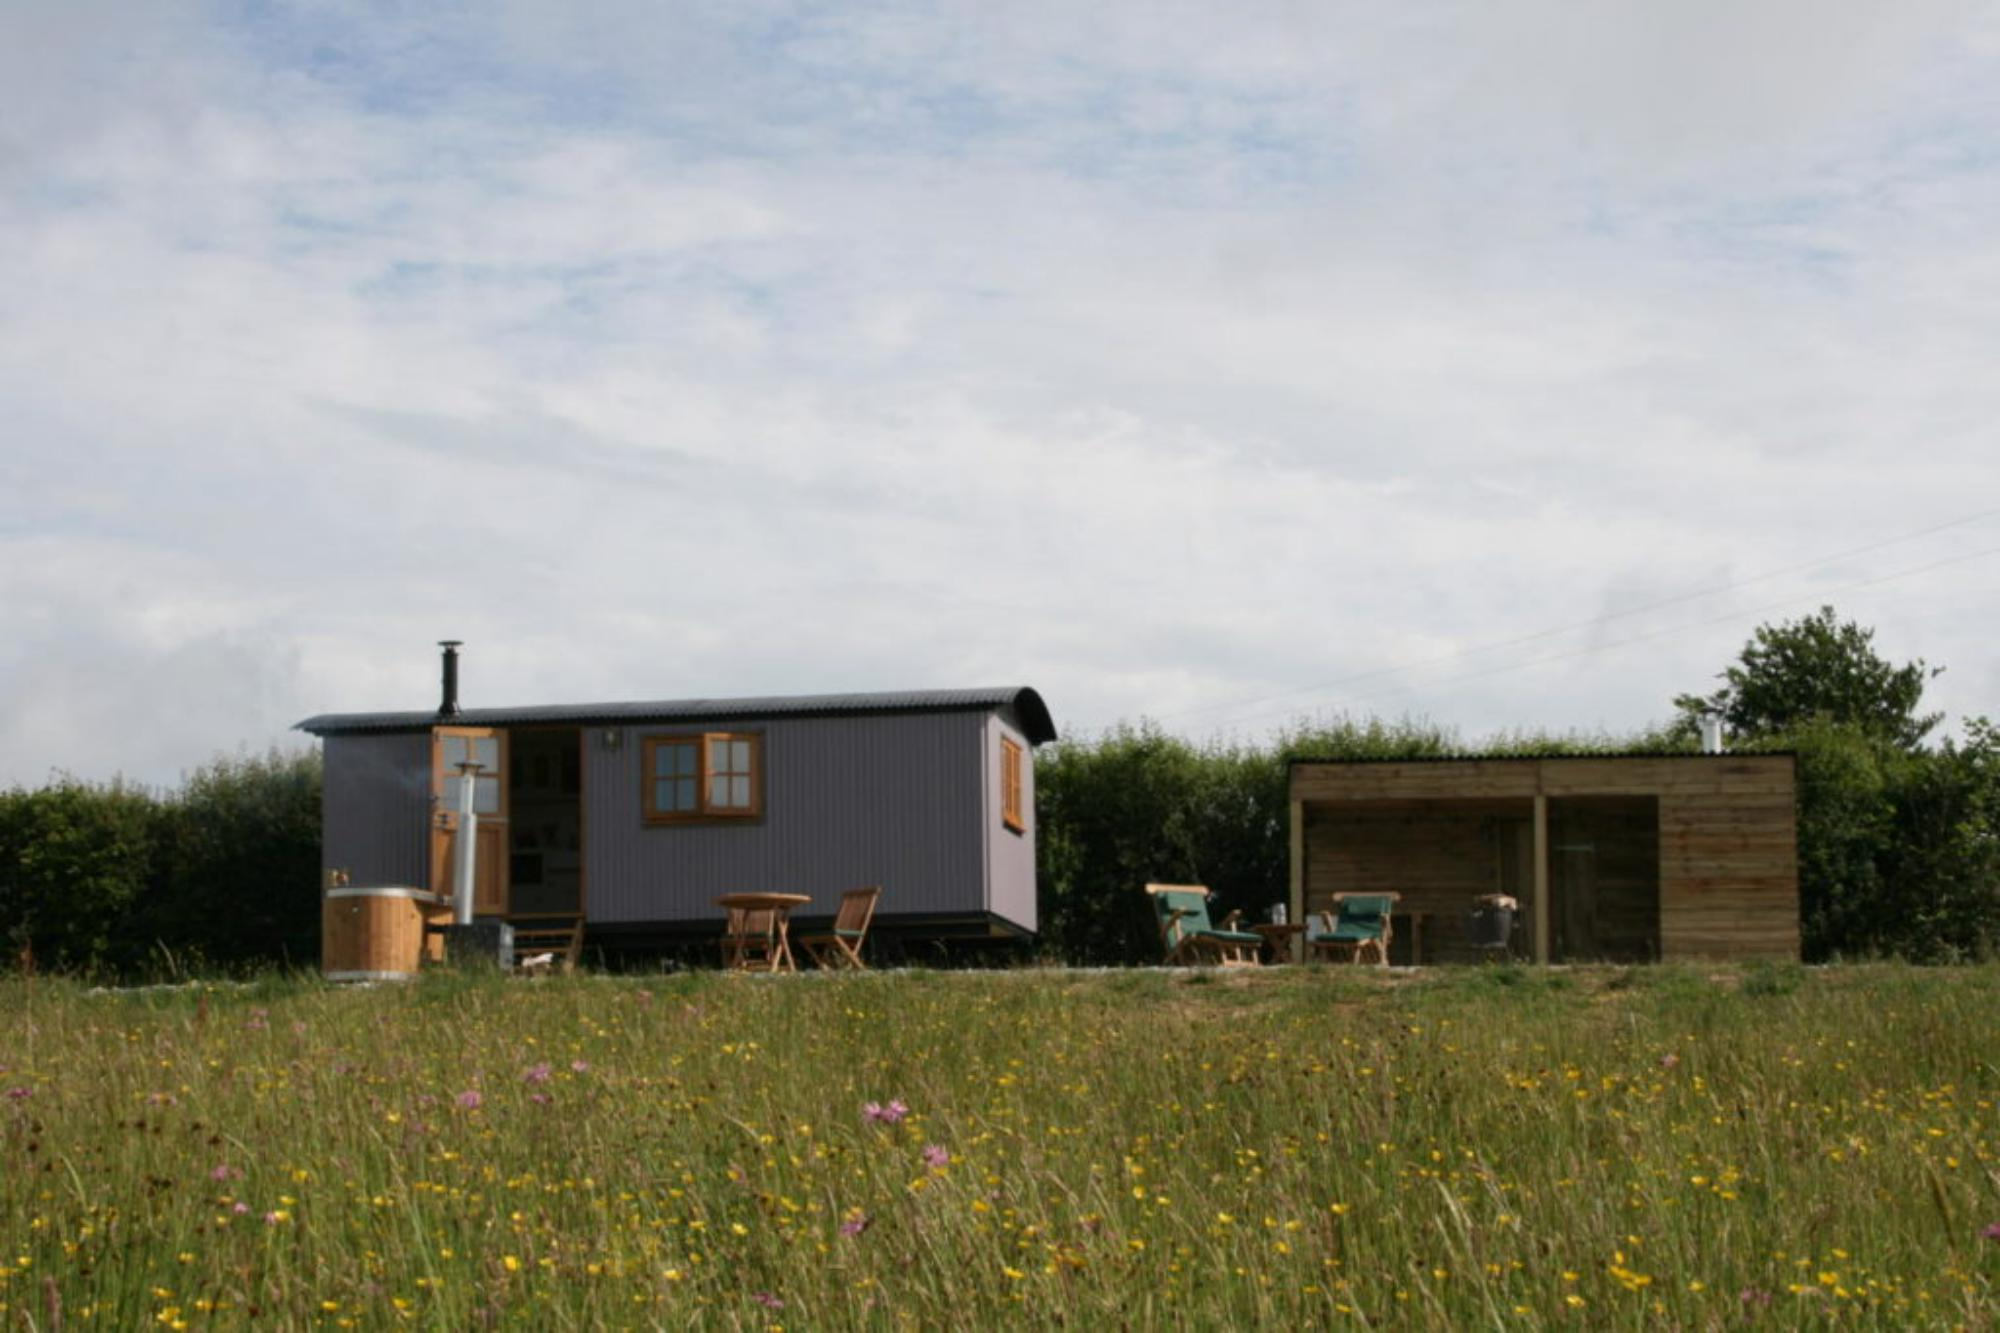 Glamping in South West England holidays at Cool Places